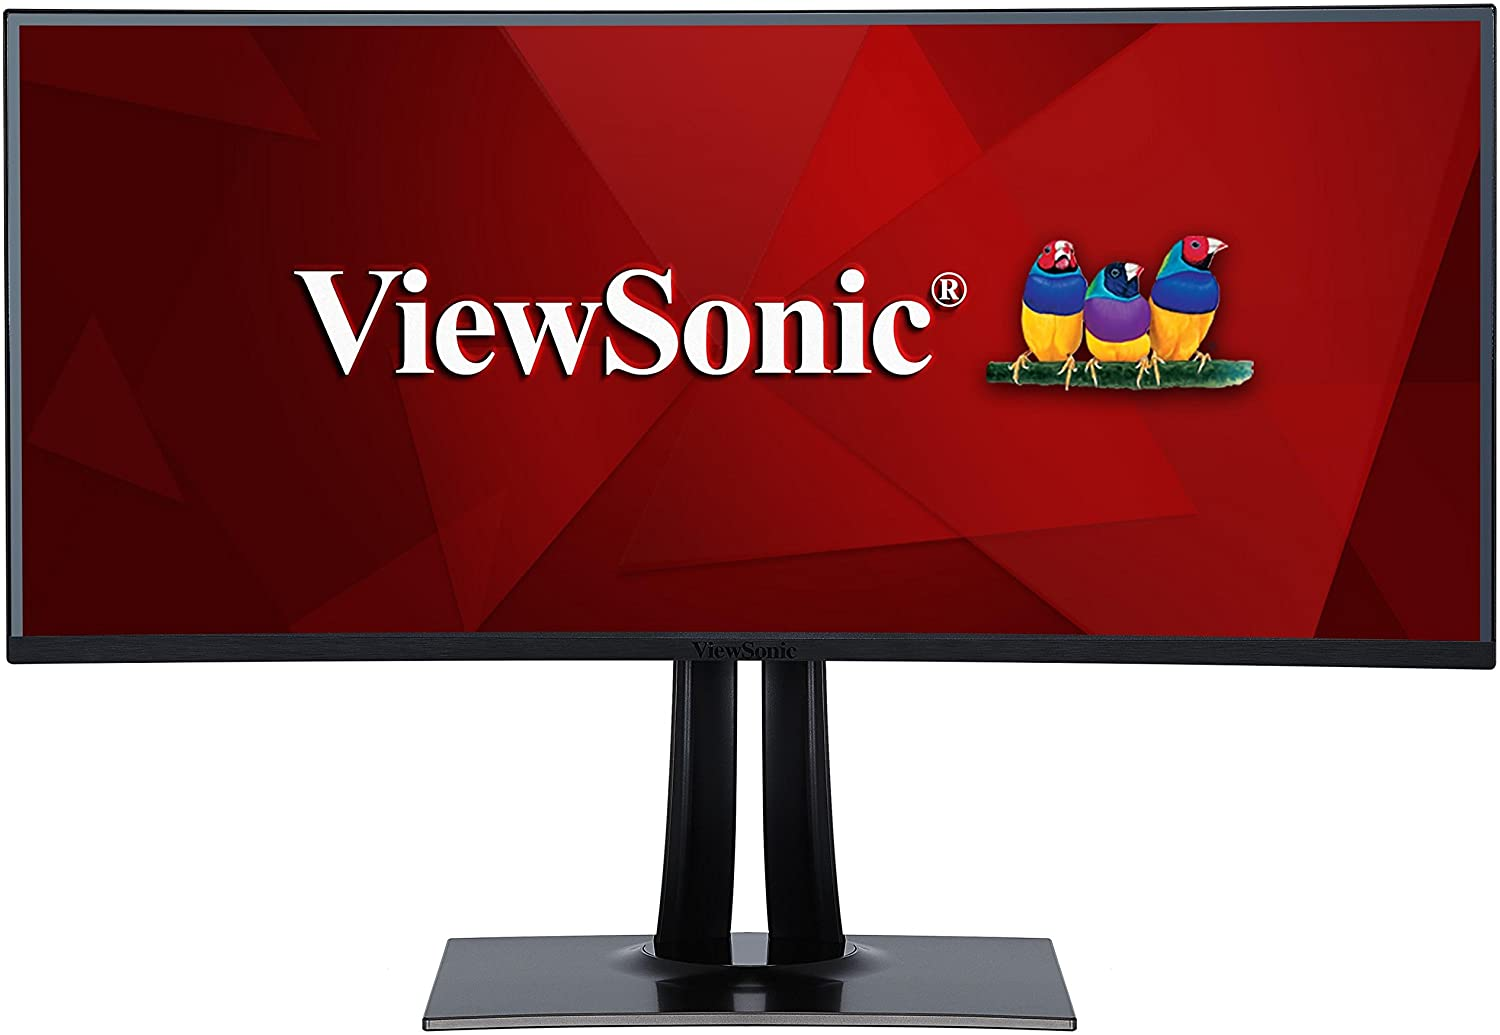 first impressions viewsonic vp3881 monitor image